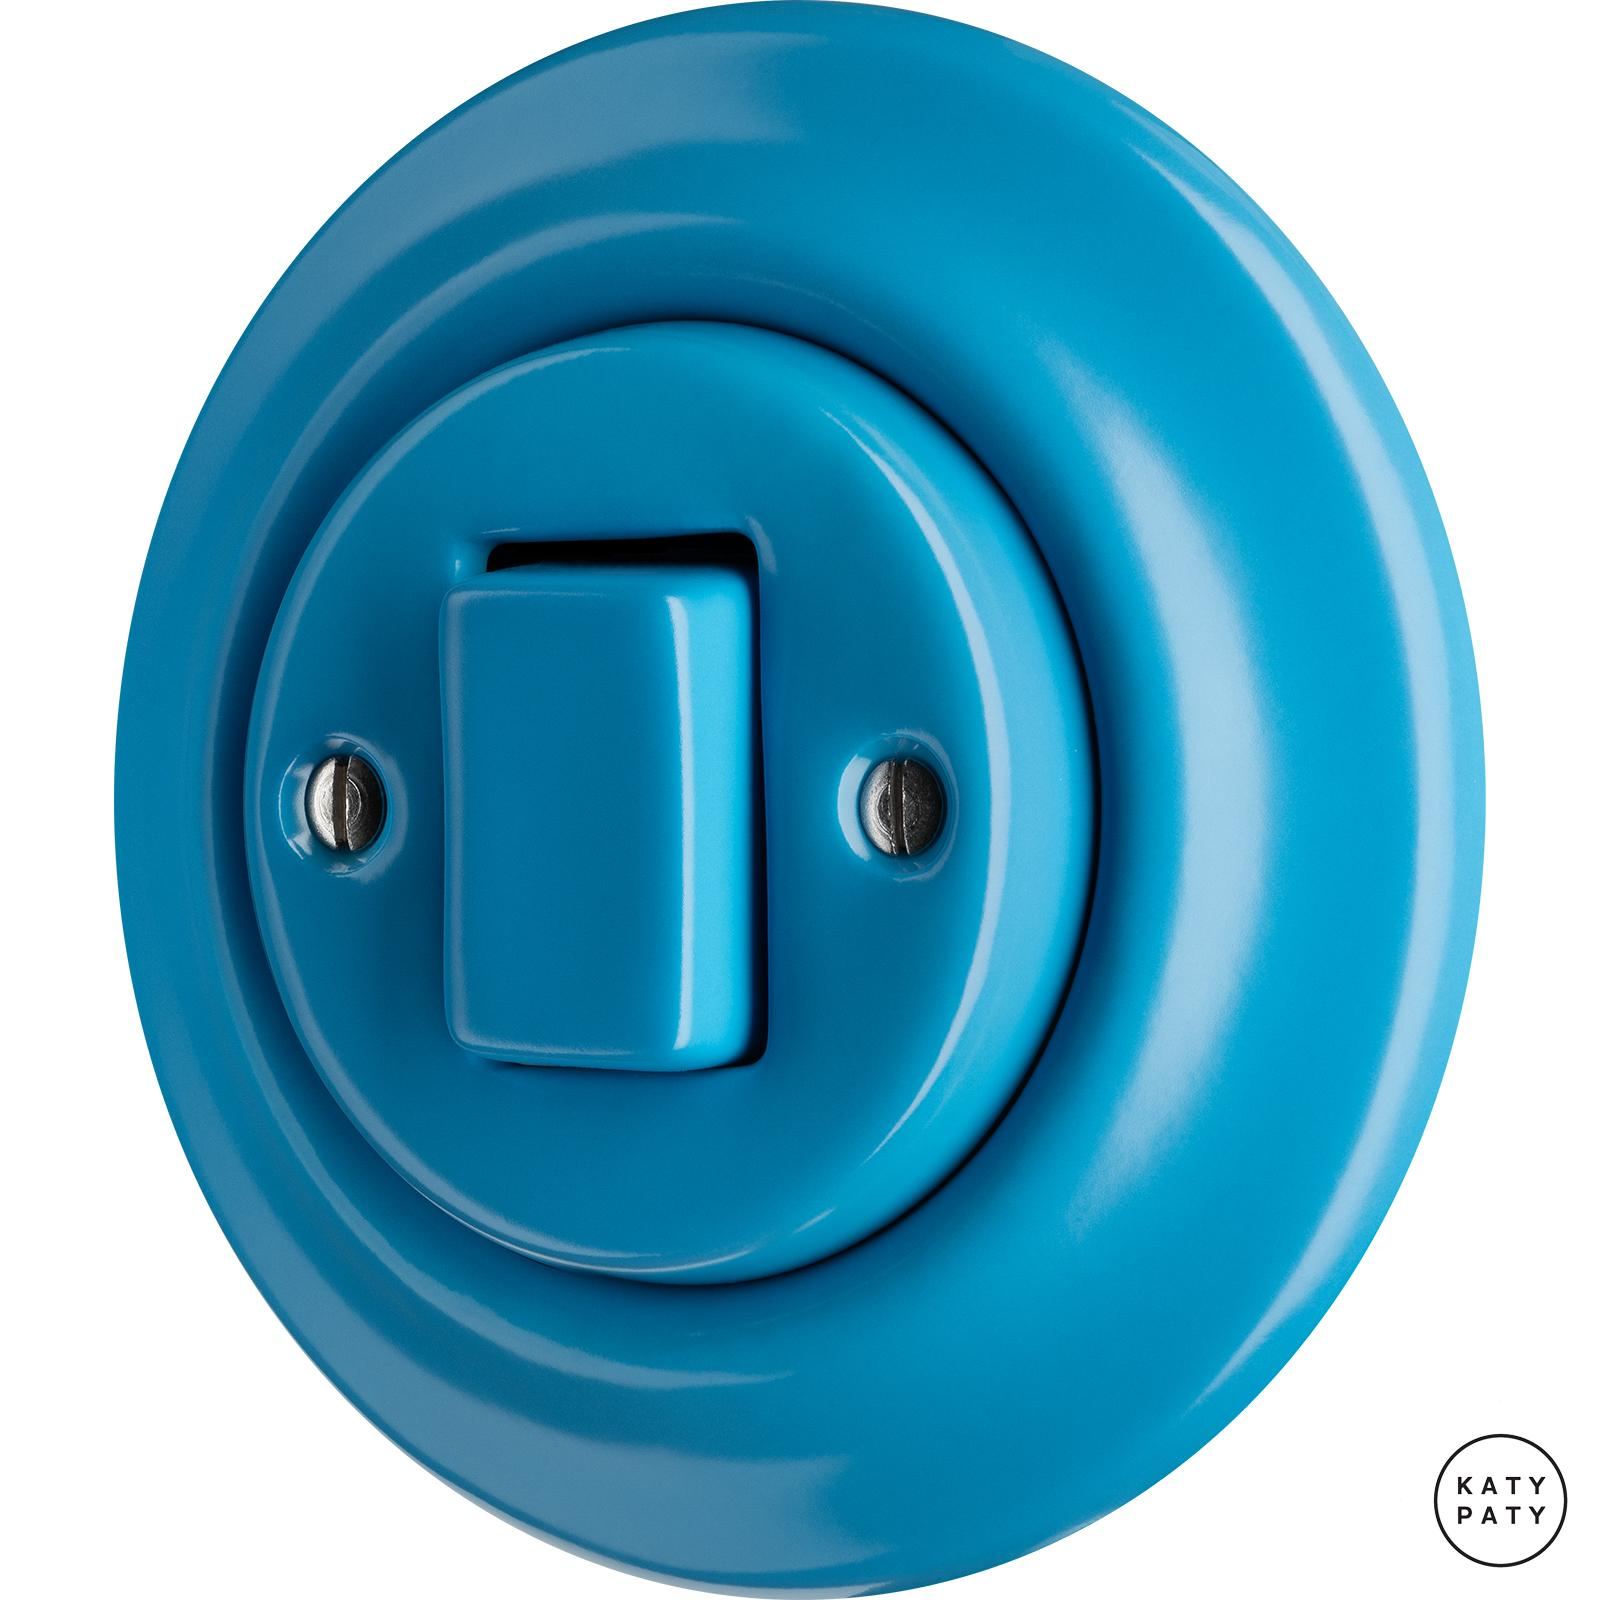 Porcelain switches - 1 key - FAT ()  - NITOR ARA | Katy Paty